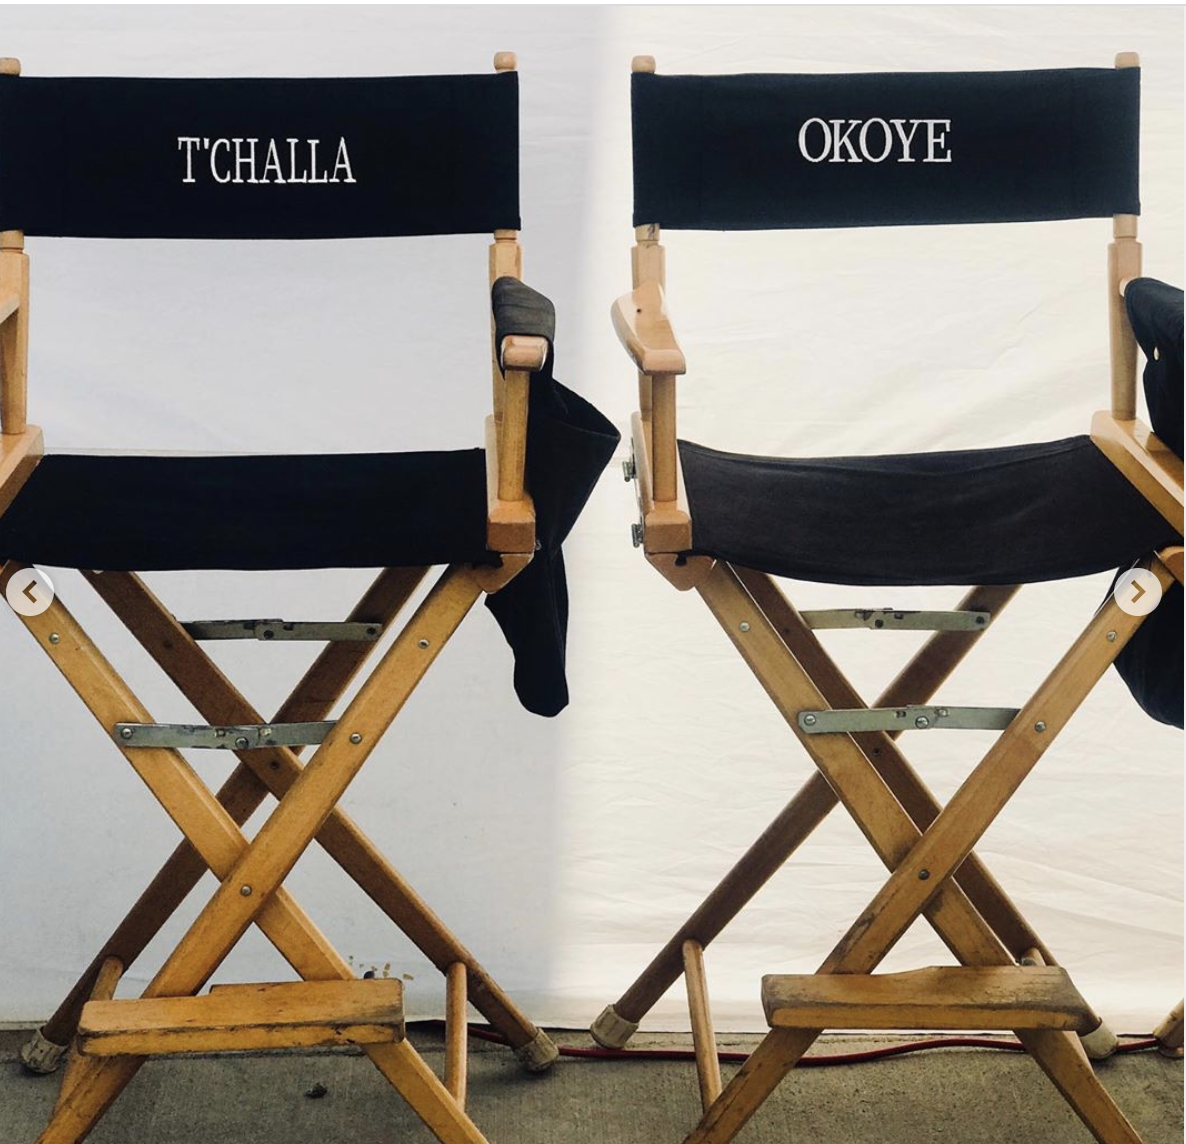 Empty director chairs for T'Challa and Okoye